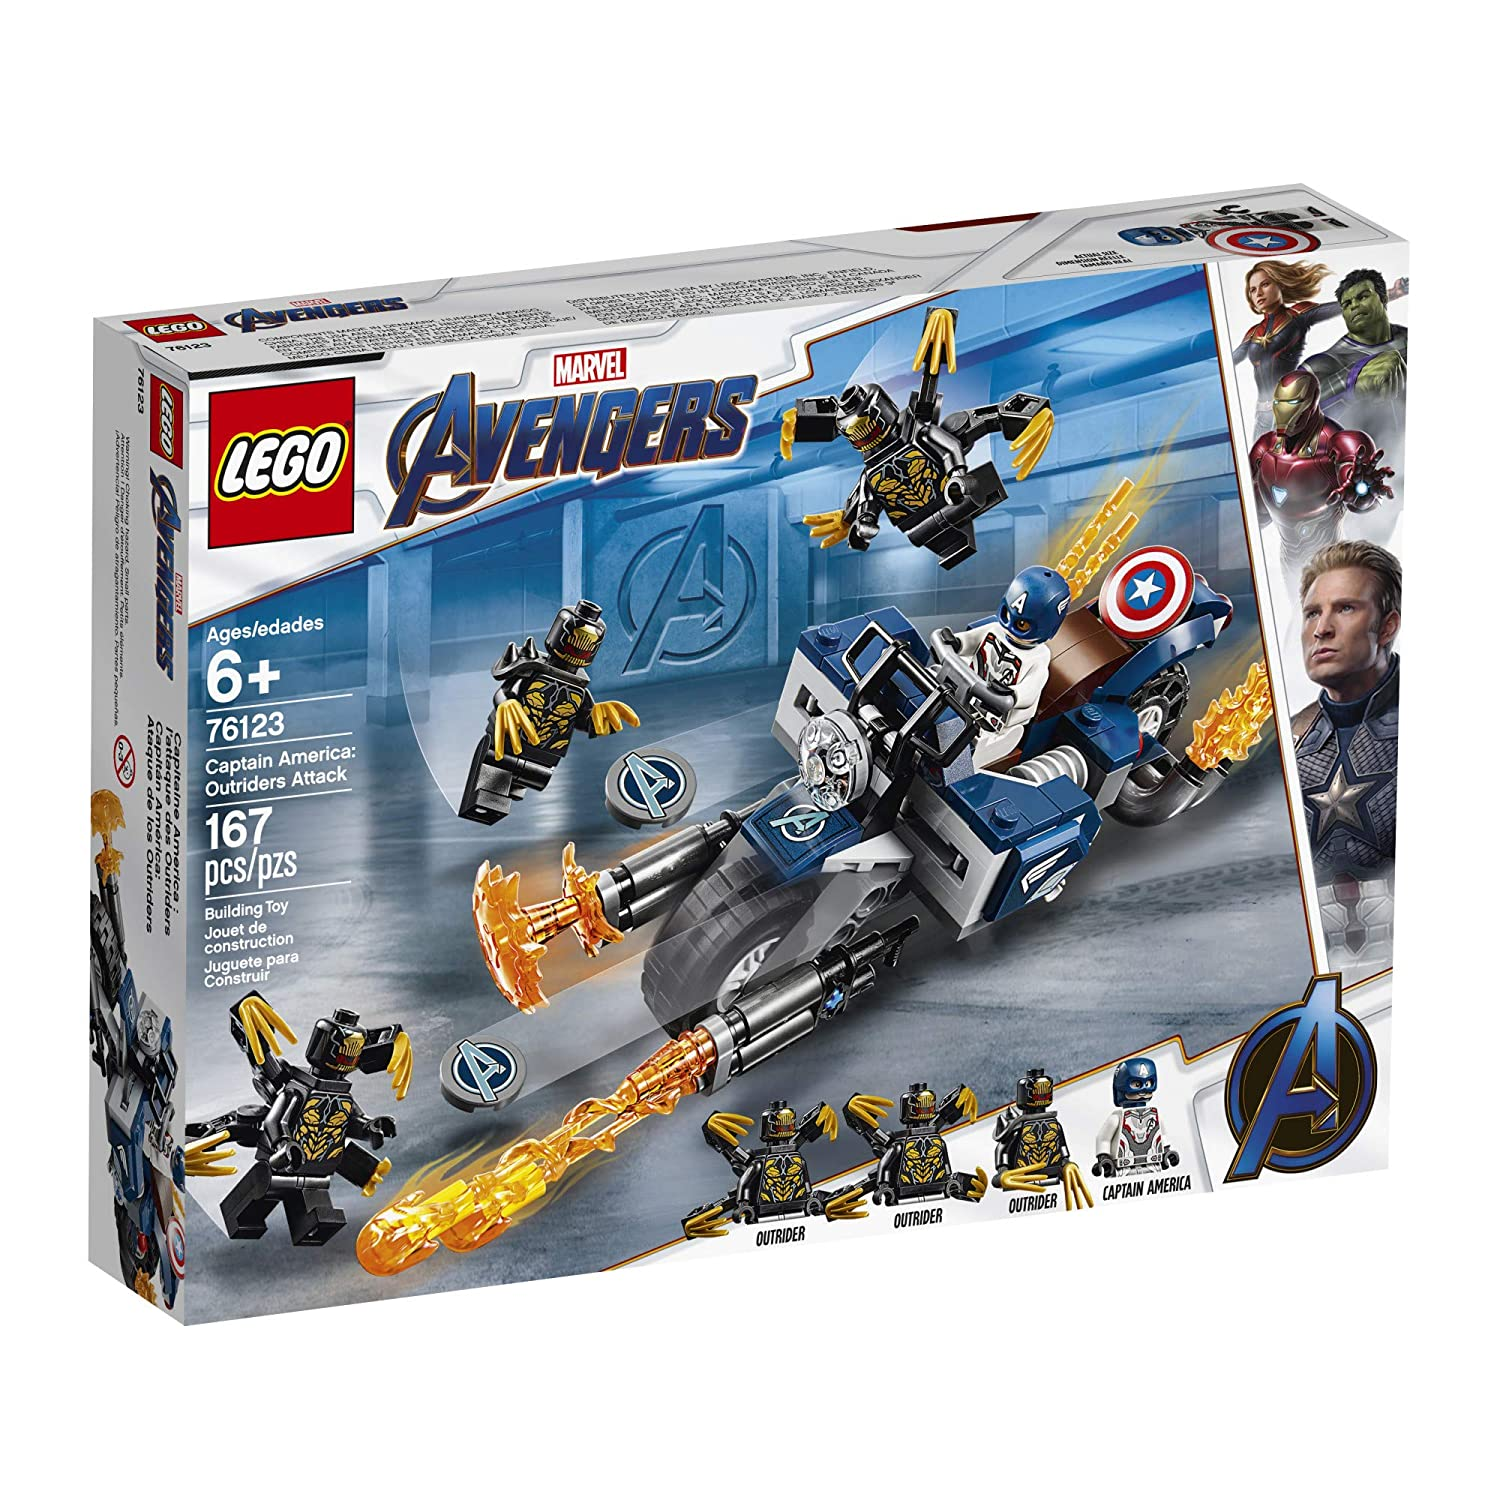 Top 9 Best LEGO Captain America Sets Reviews in 2019 1